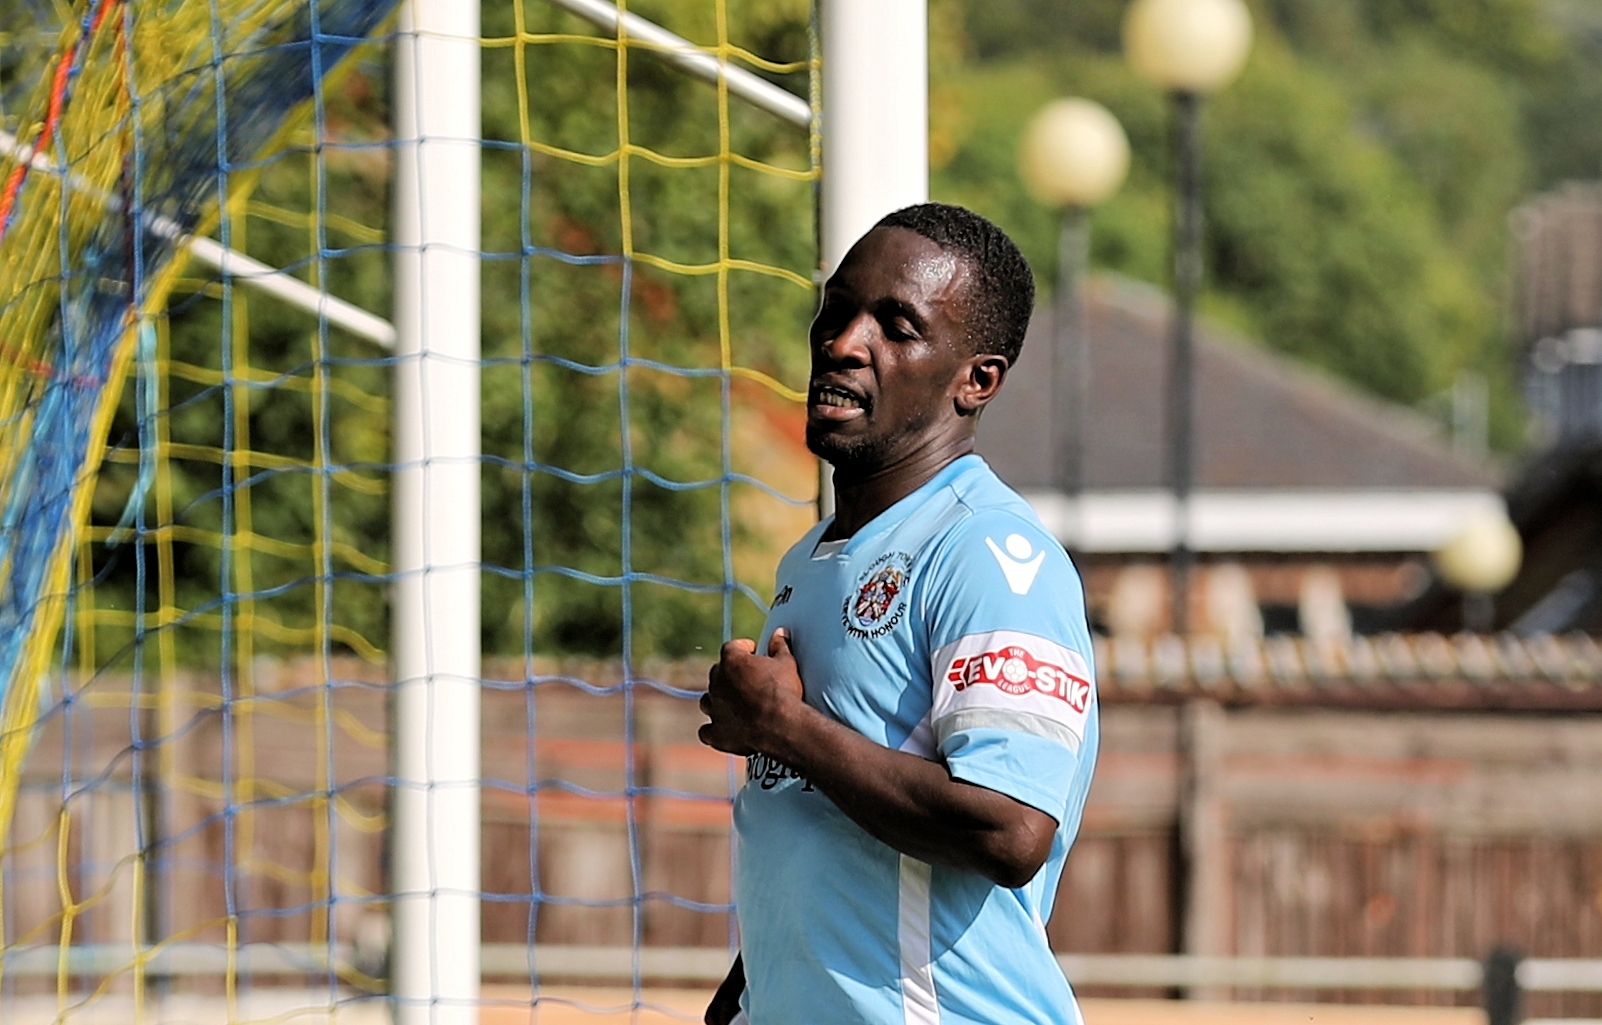 Slough Town star Manny Williams scored two goals in the 8-1 victory over Dunstable Town on Saturday. PHOTO: Gary House.